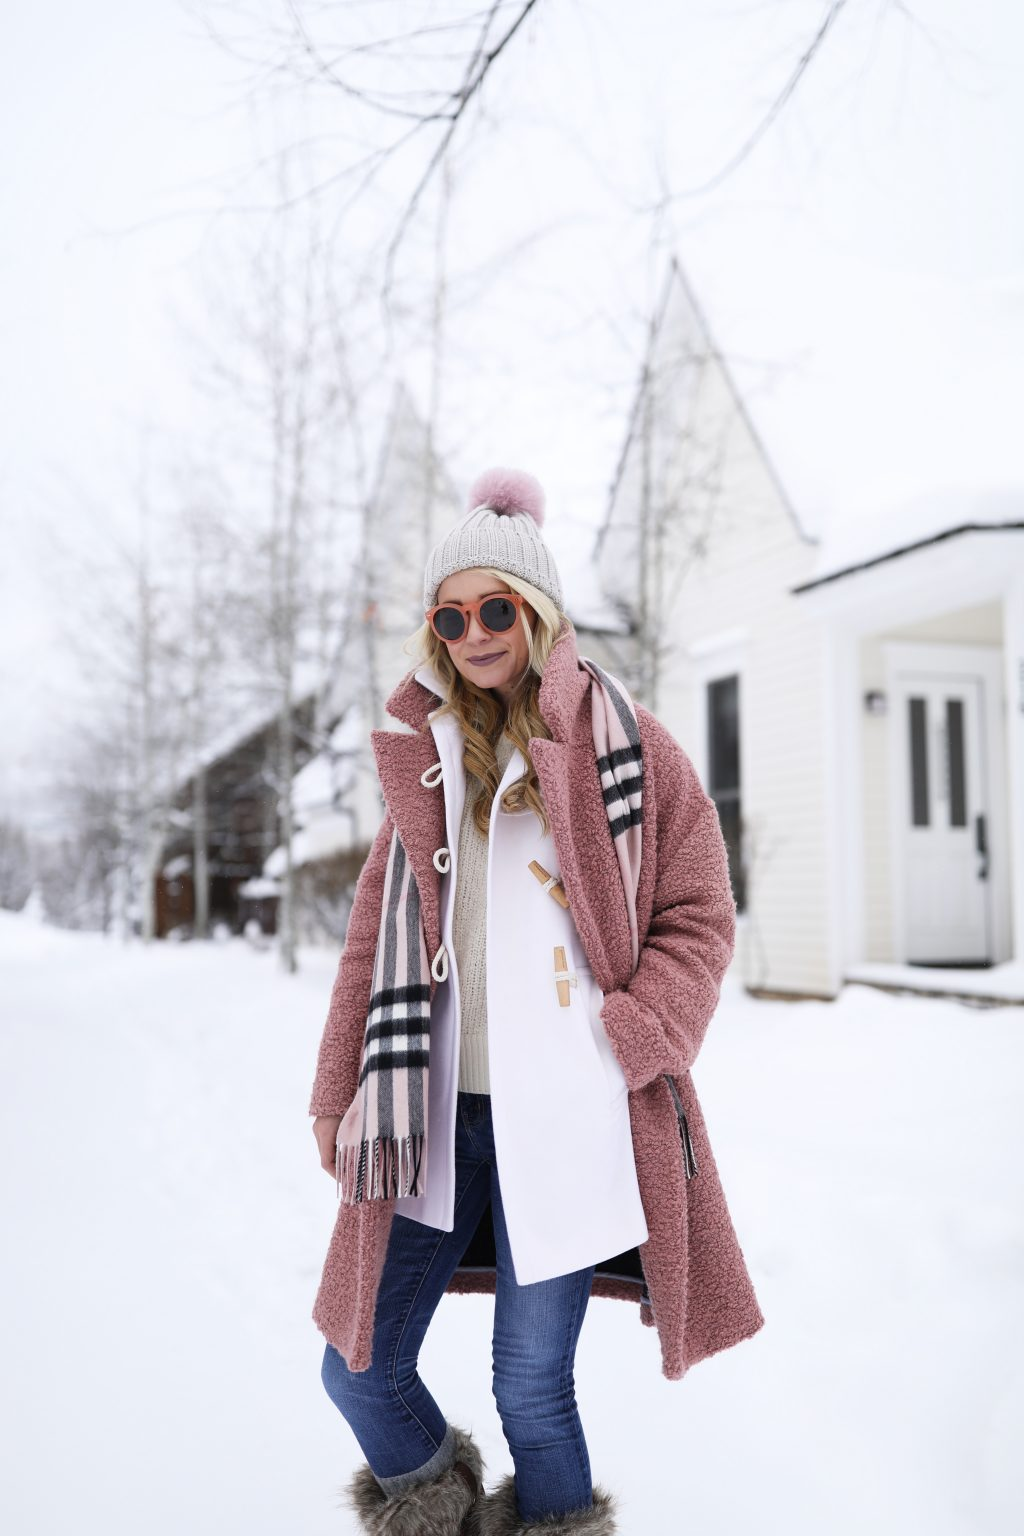 what-to-wear-aspen-fashion-winter-holiday-outfit-ideas